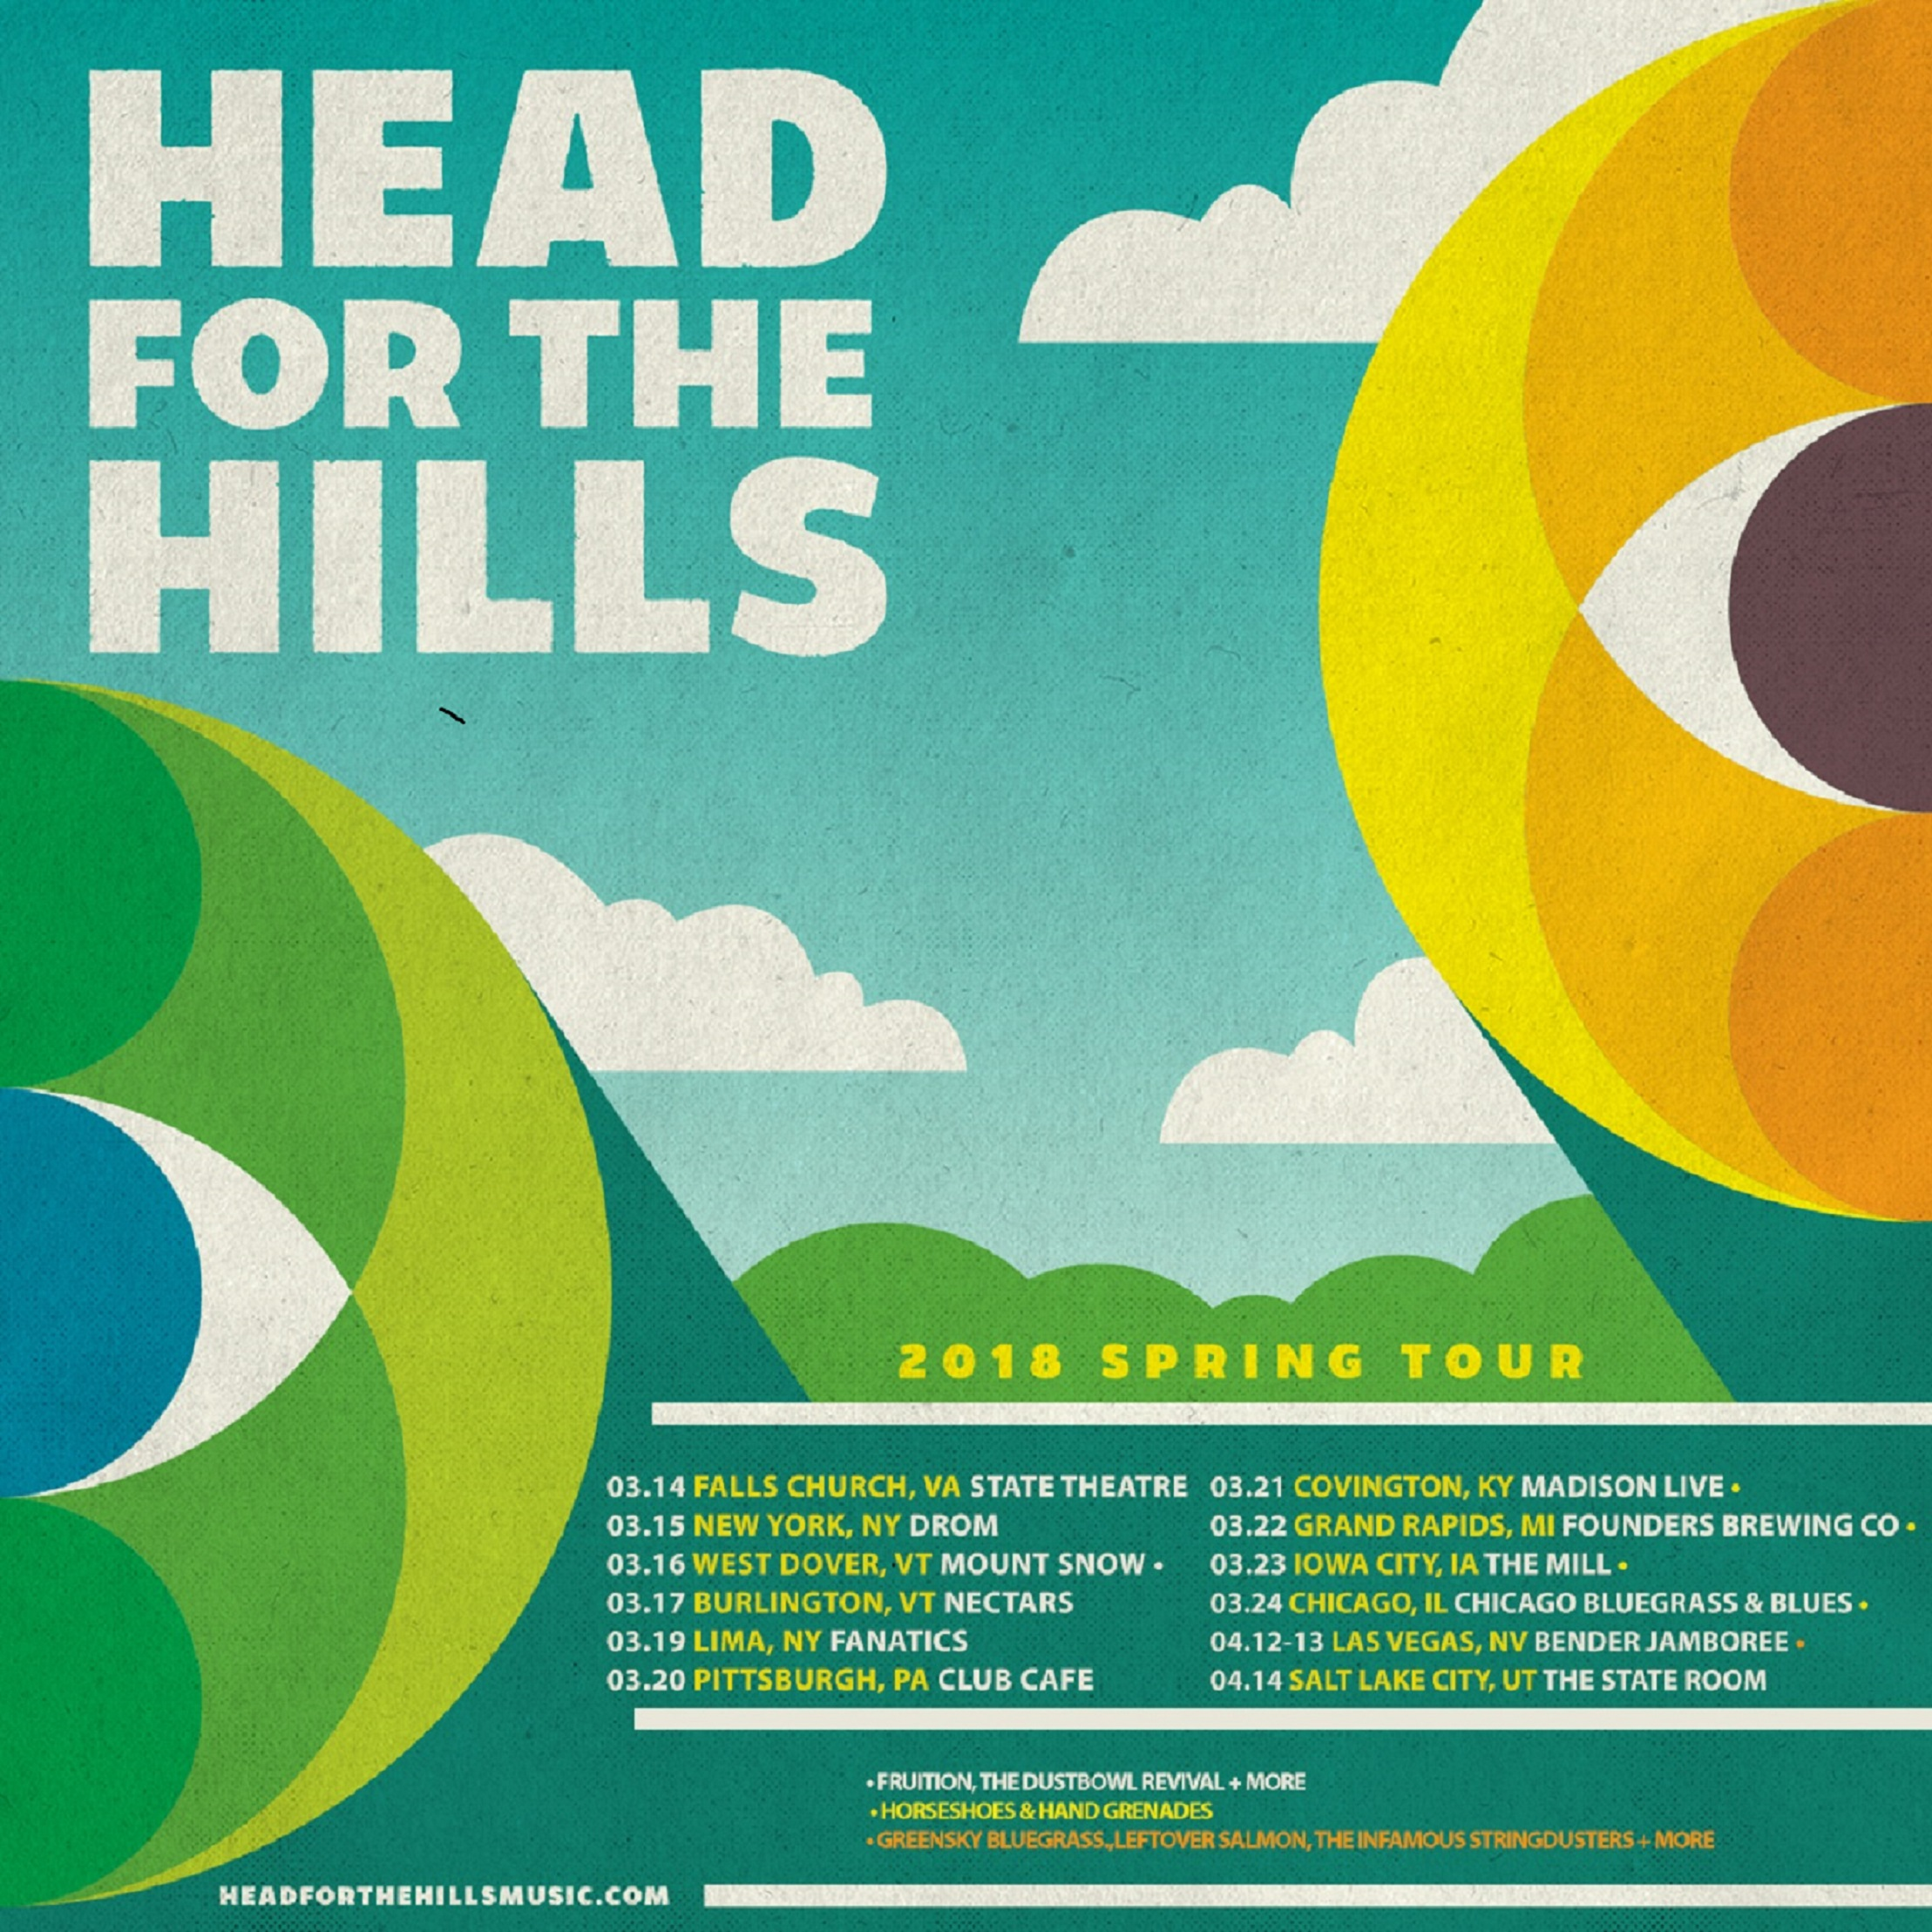 HEAD FOR THE HILLS 2018 SPRING TOUR